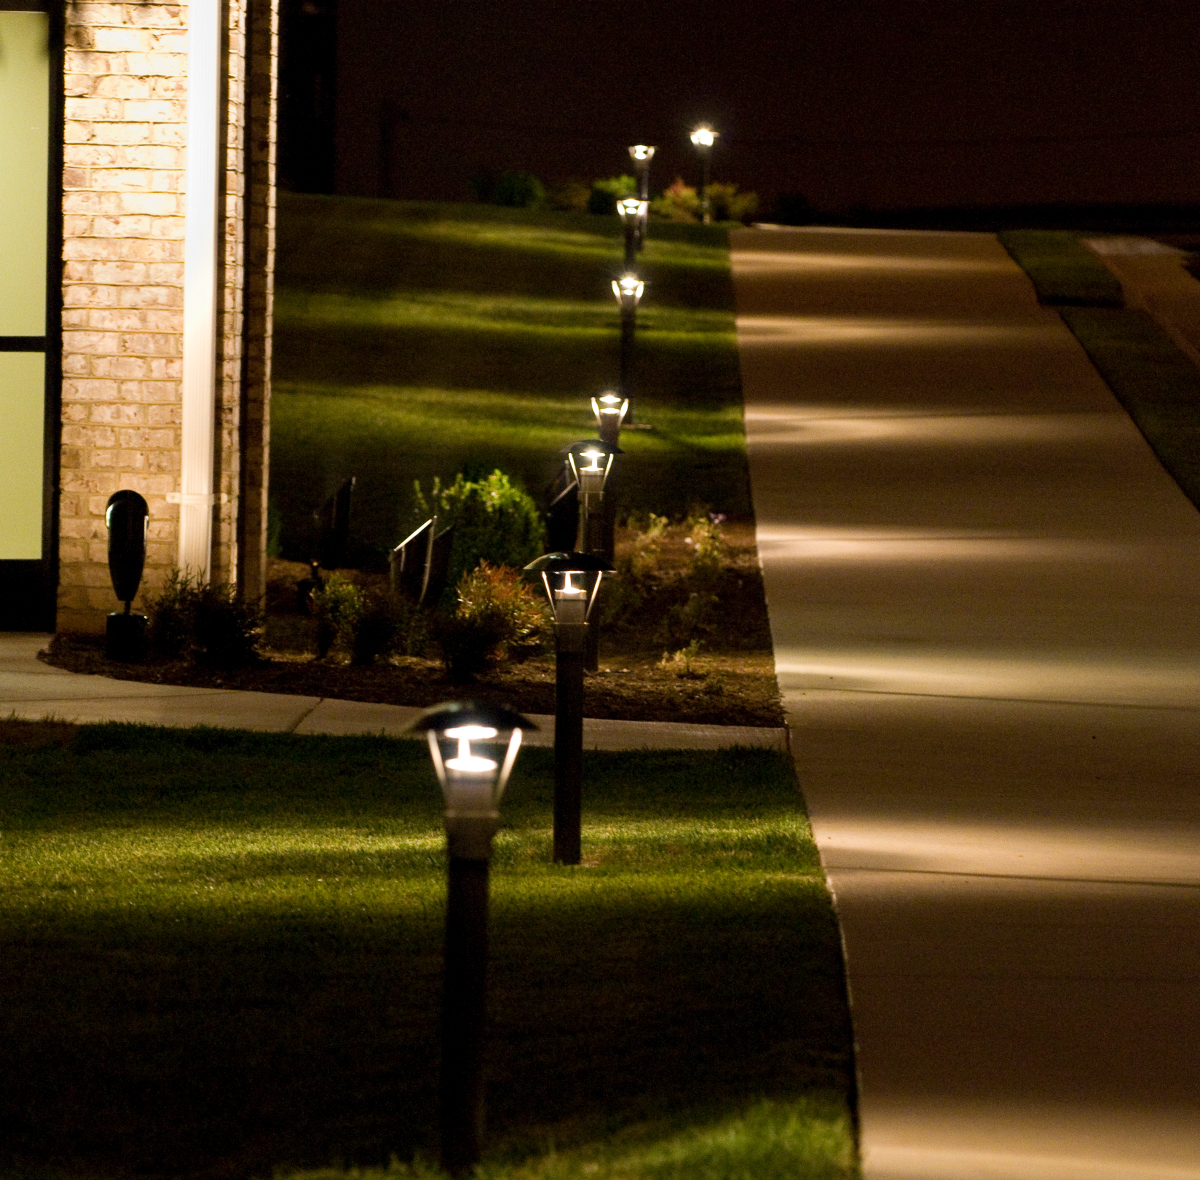 Outdoor lighting perspectives of st louis mo - How to design landscape lighting plan ...